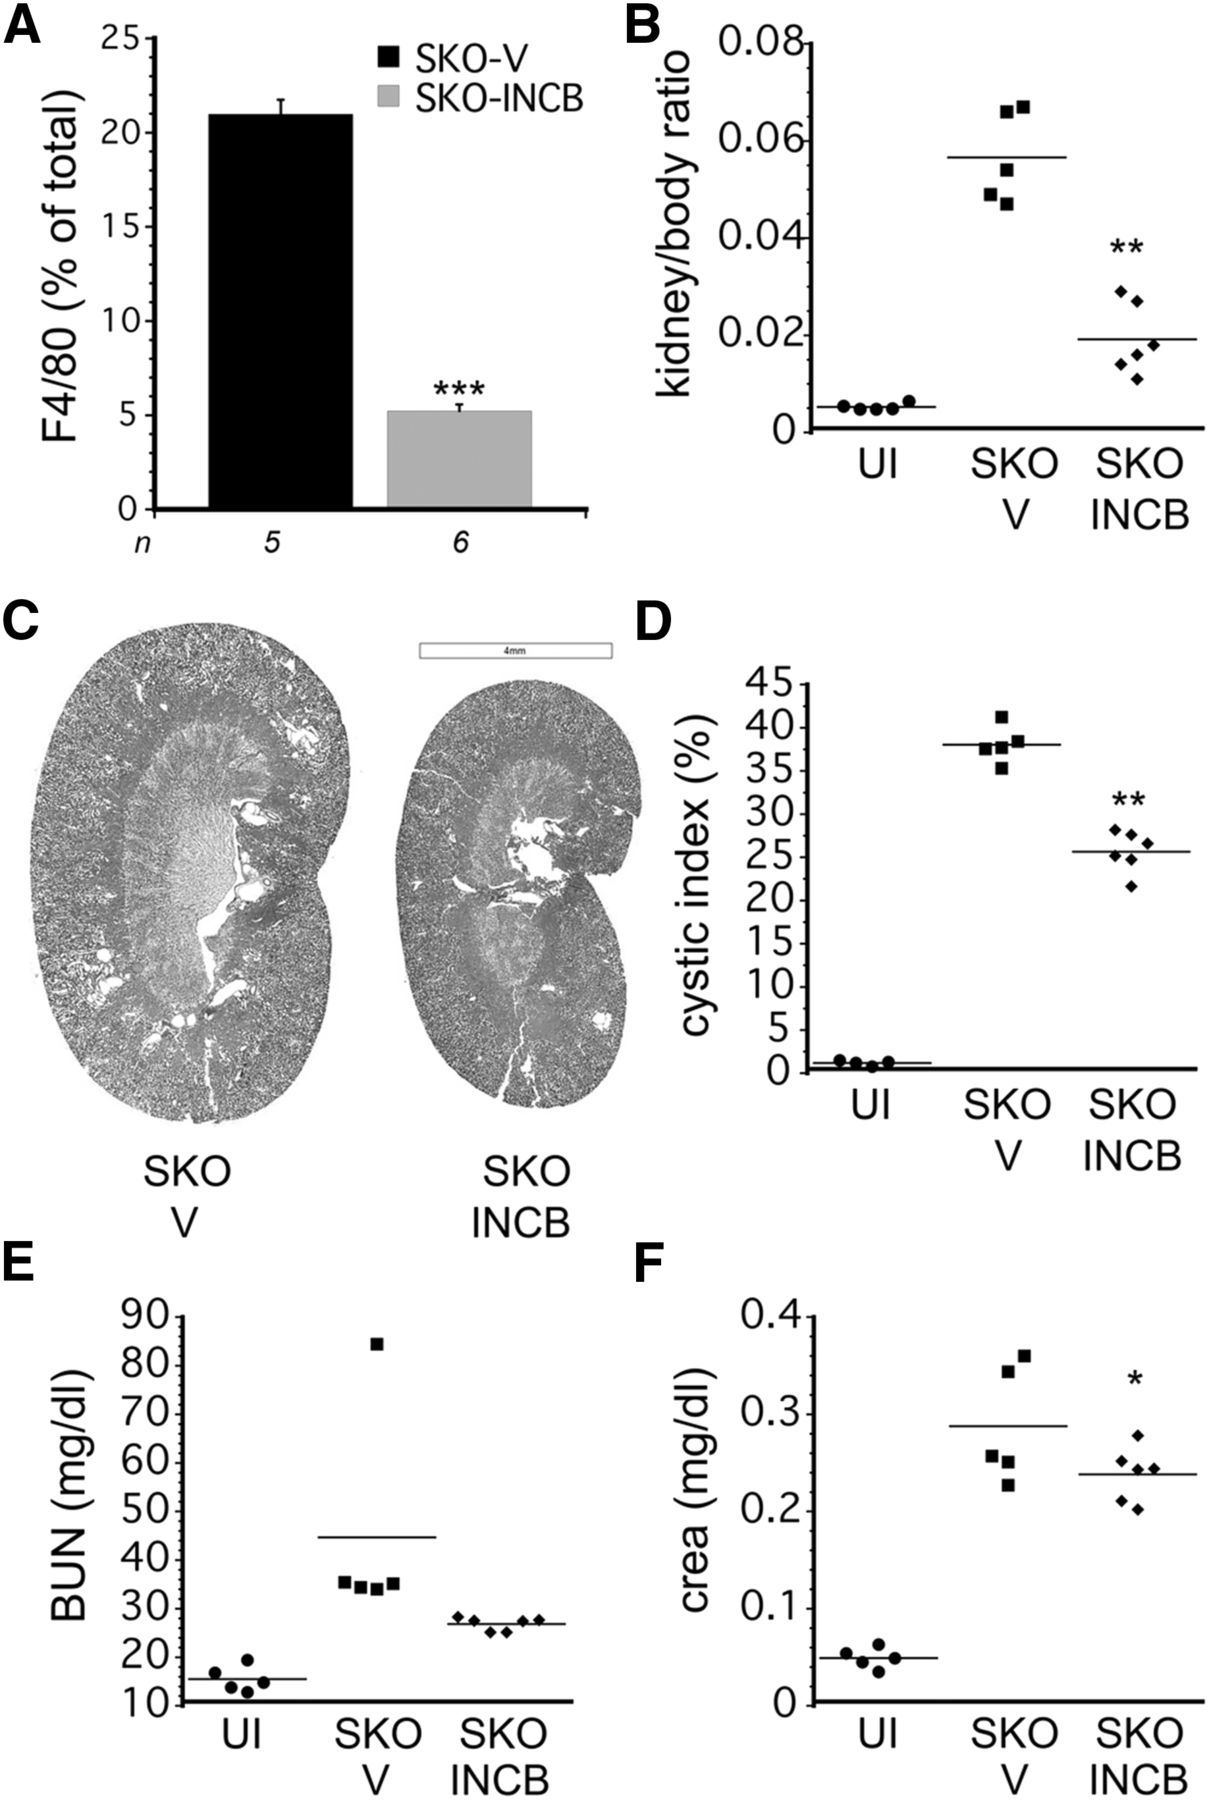 Mcp1 Promotes Macrophage-Dependent Cyst Expansion in Autosomal